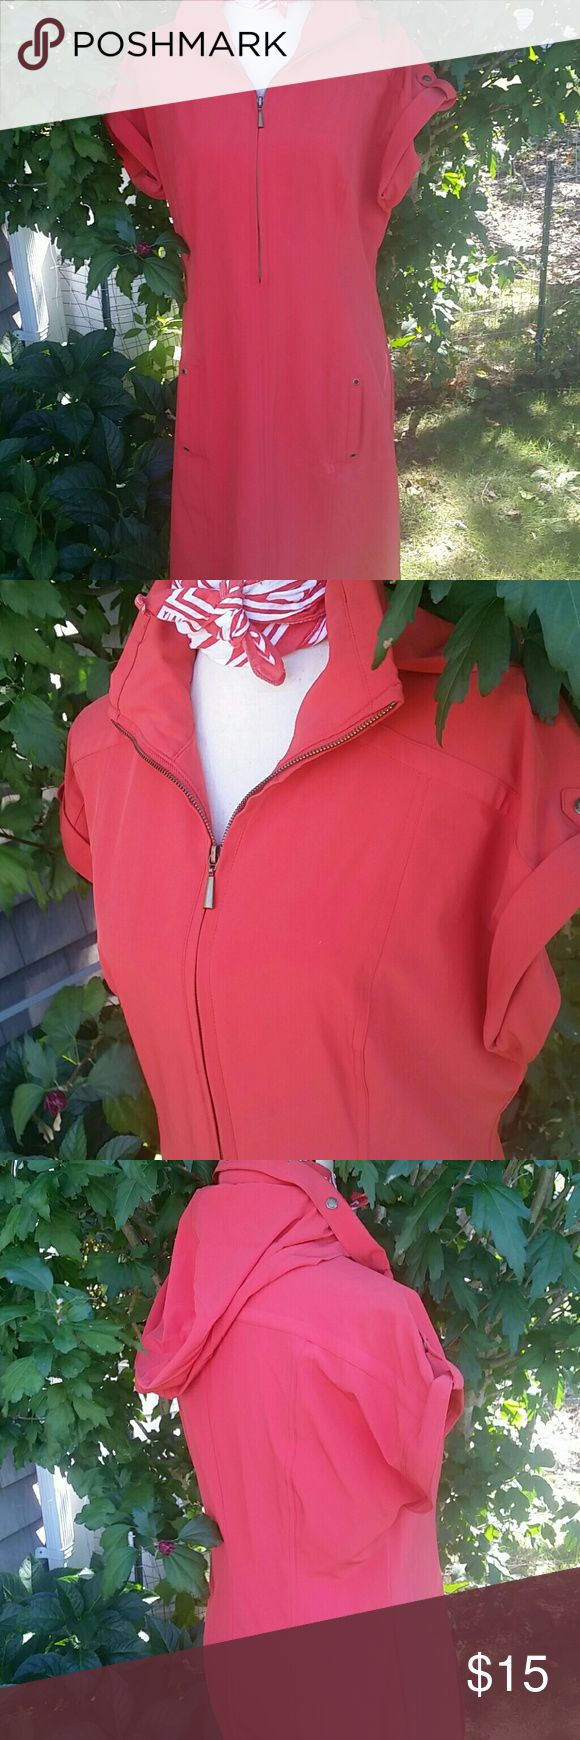 Zenergy by Chico's dress Excellent condition like new no rips or stains All zippers work. 87%polyester 13%spandex.  Bunt orange coral color dress, with athlete workout style. Chico's Dresses Midi